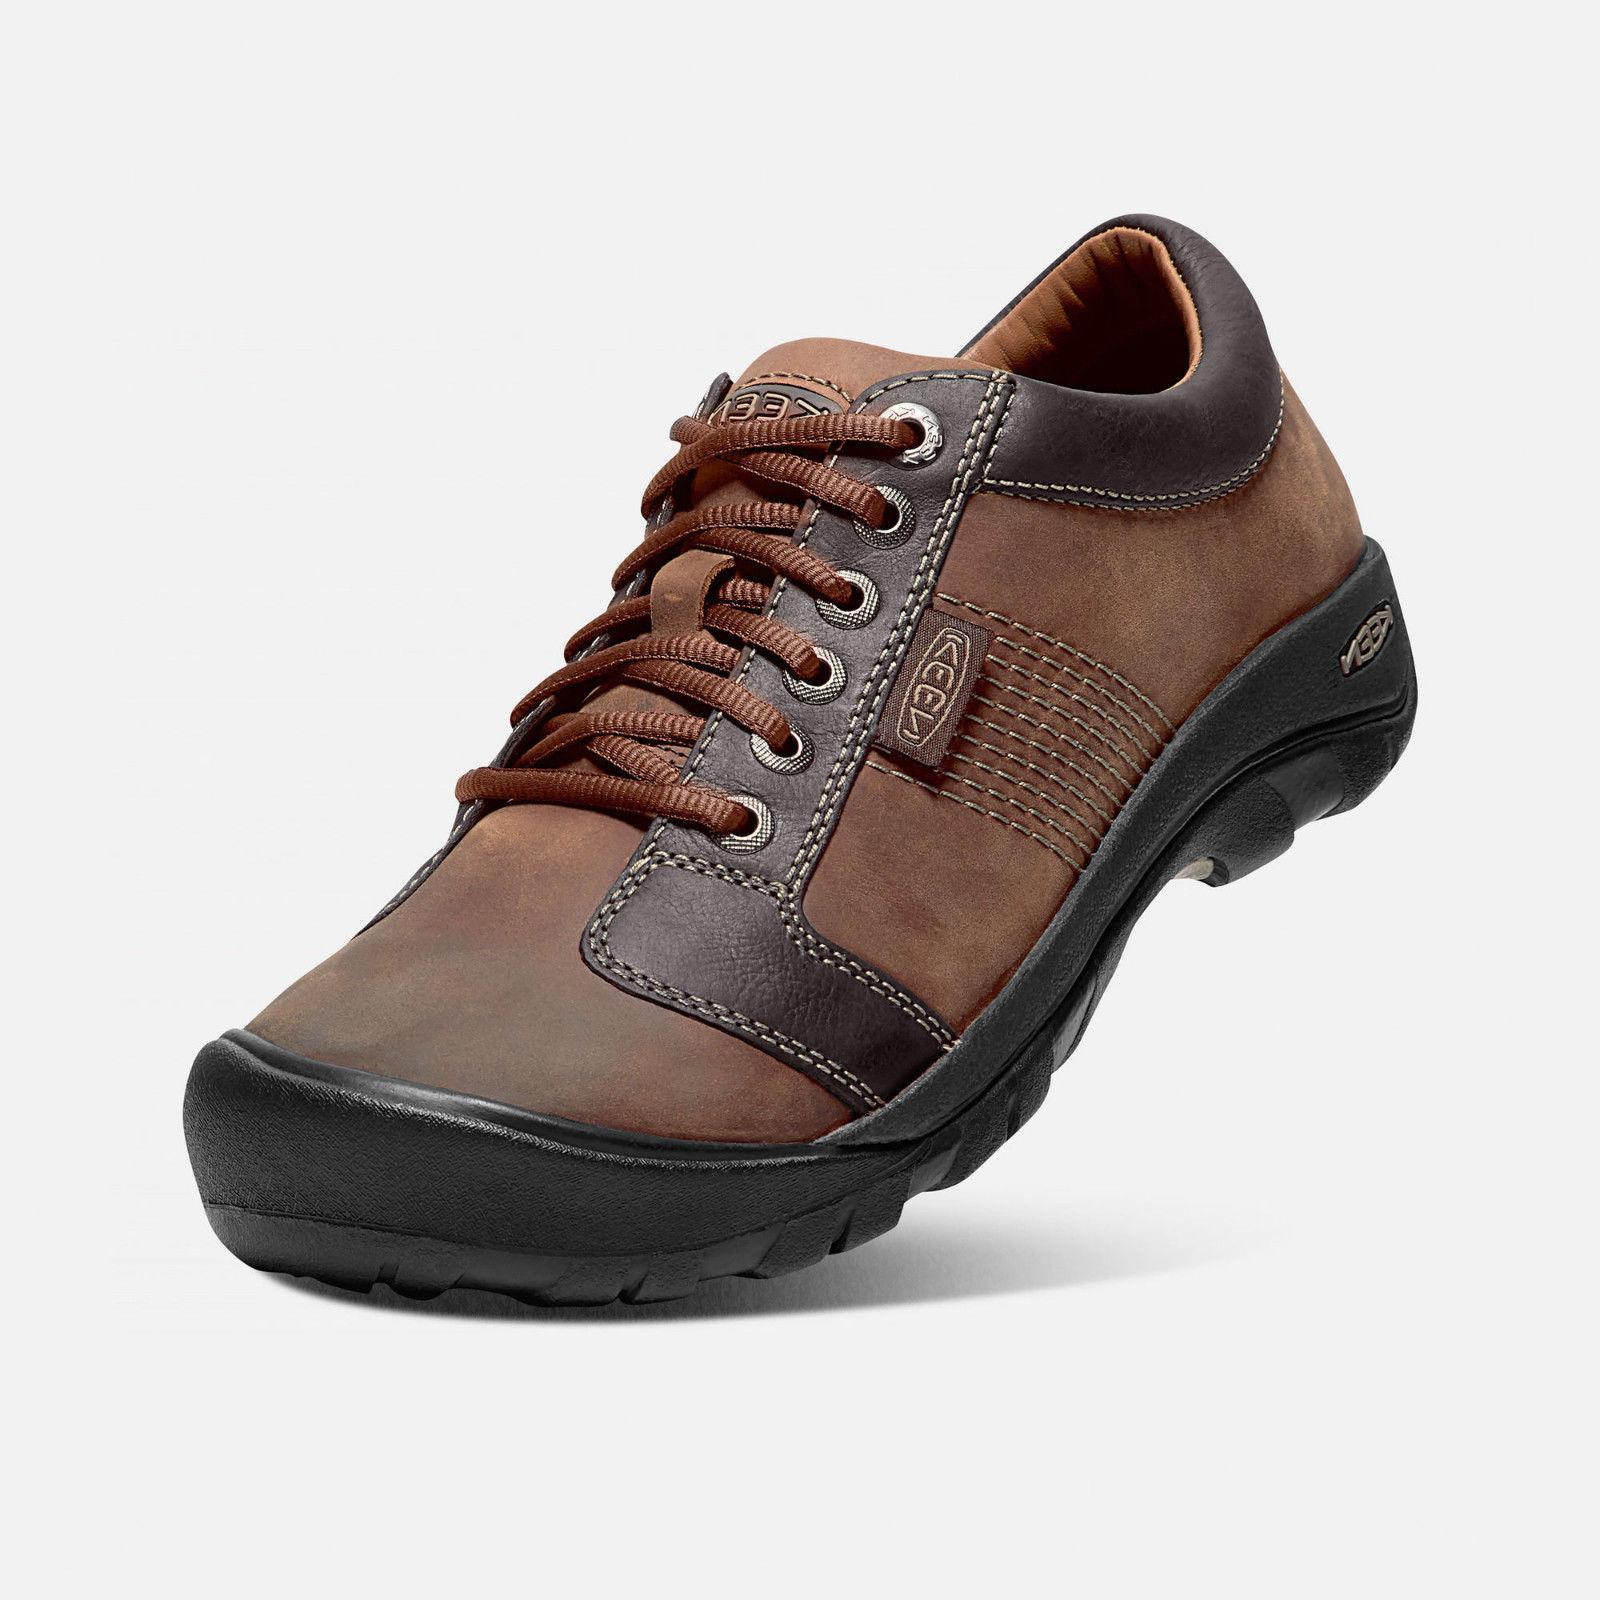 KEEN Chocolate Brown Men's Shoes BOX TAG